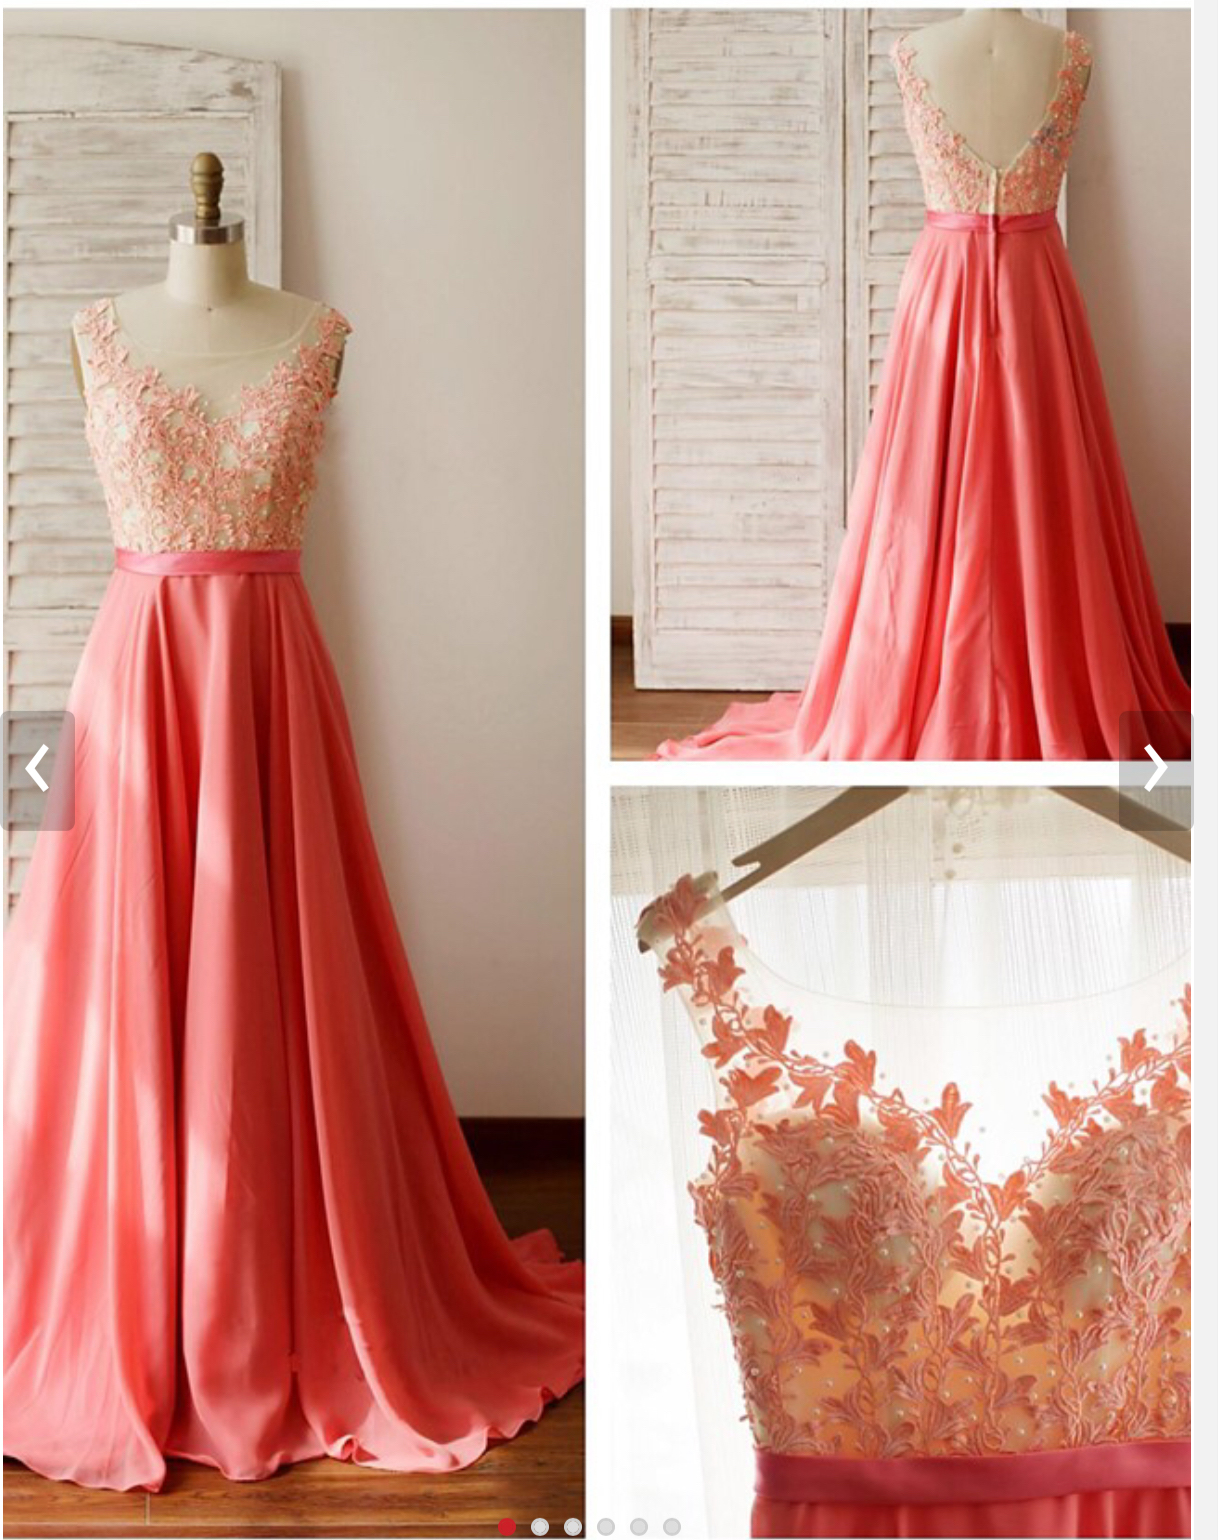 Lace Appliqued Bodice 2016 Prom Dress,Watermelon Chiffon Long Bridesmaid Dresses 1723